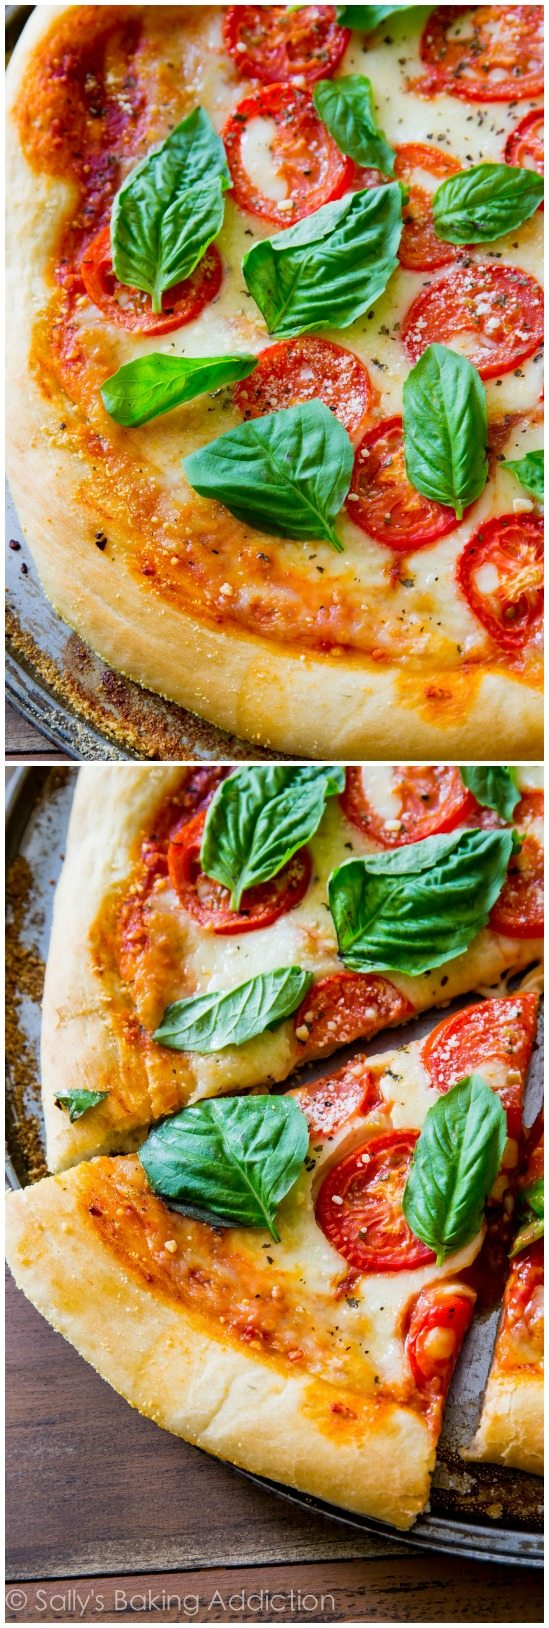 Sometimes you just can't beat a classic like fresh and simple Margherita Pizza. This homemade pizza crust with fresh toppings hits the spot!